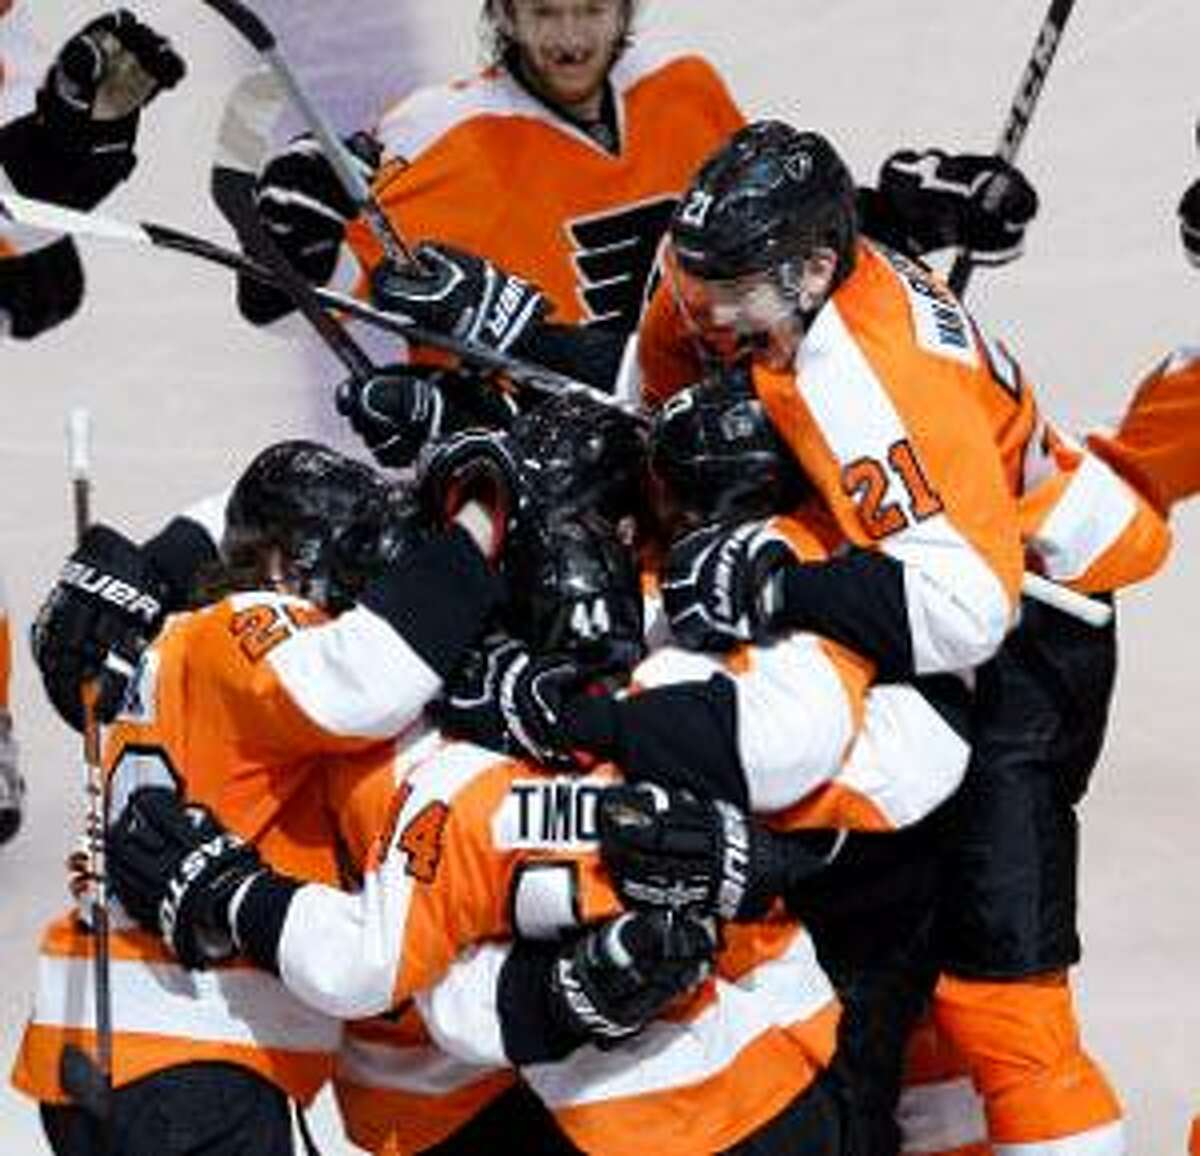 ASSOCIATED PRESS Philadelphia Flyers' James van Riemsdyk (21) jumps on the pile surrounding Danny Briere (48) after Briere's winning goal in the overtime period of Game 1 in a second-round NHL Stanley Cup series with the New Jersey Devils Sunday in Philadelphia. The Flyers won 4-3 in overtime.